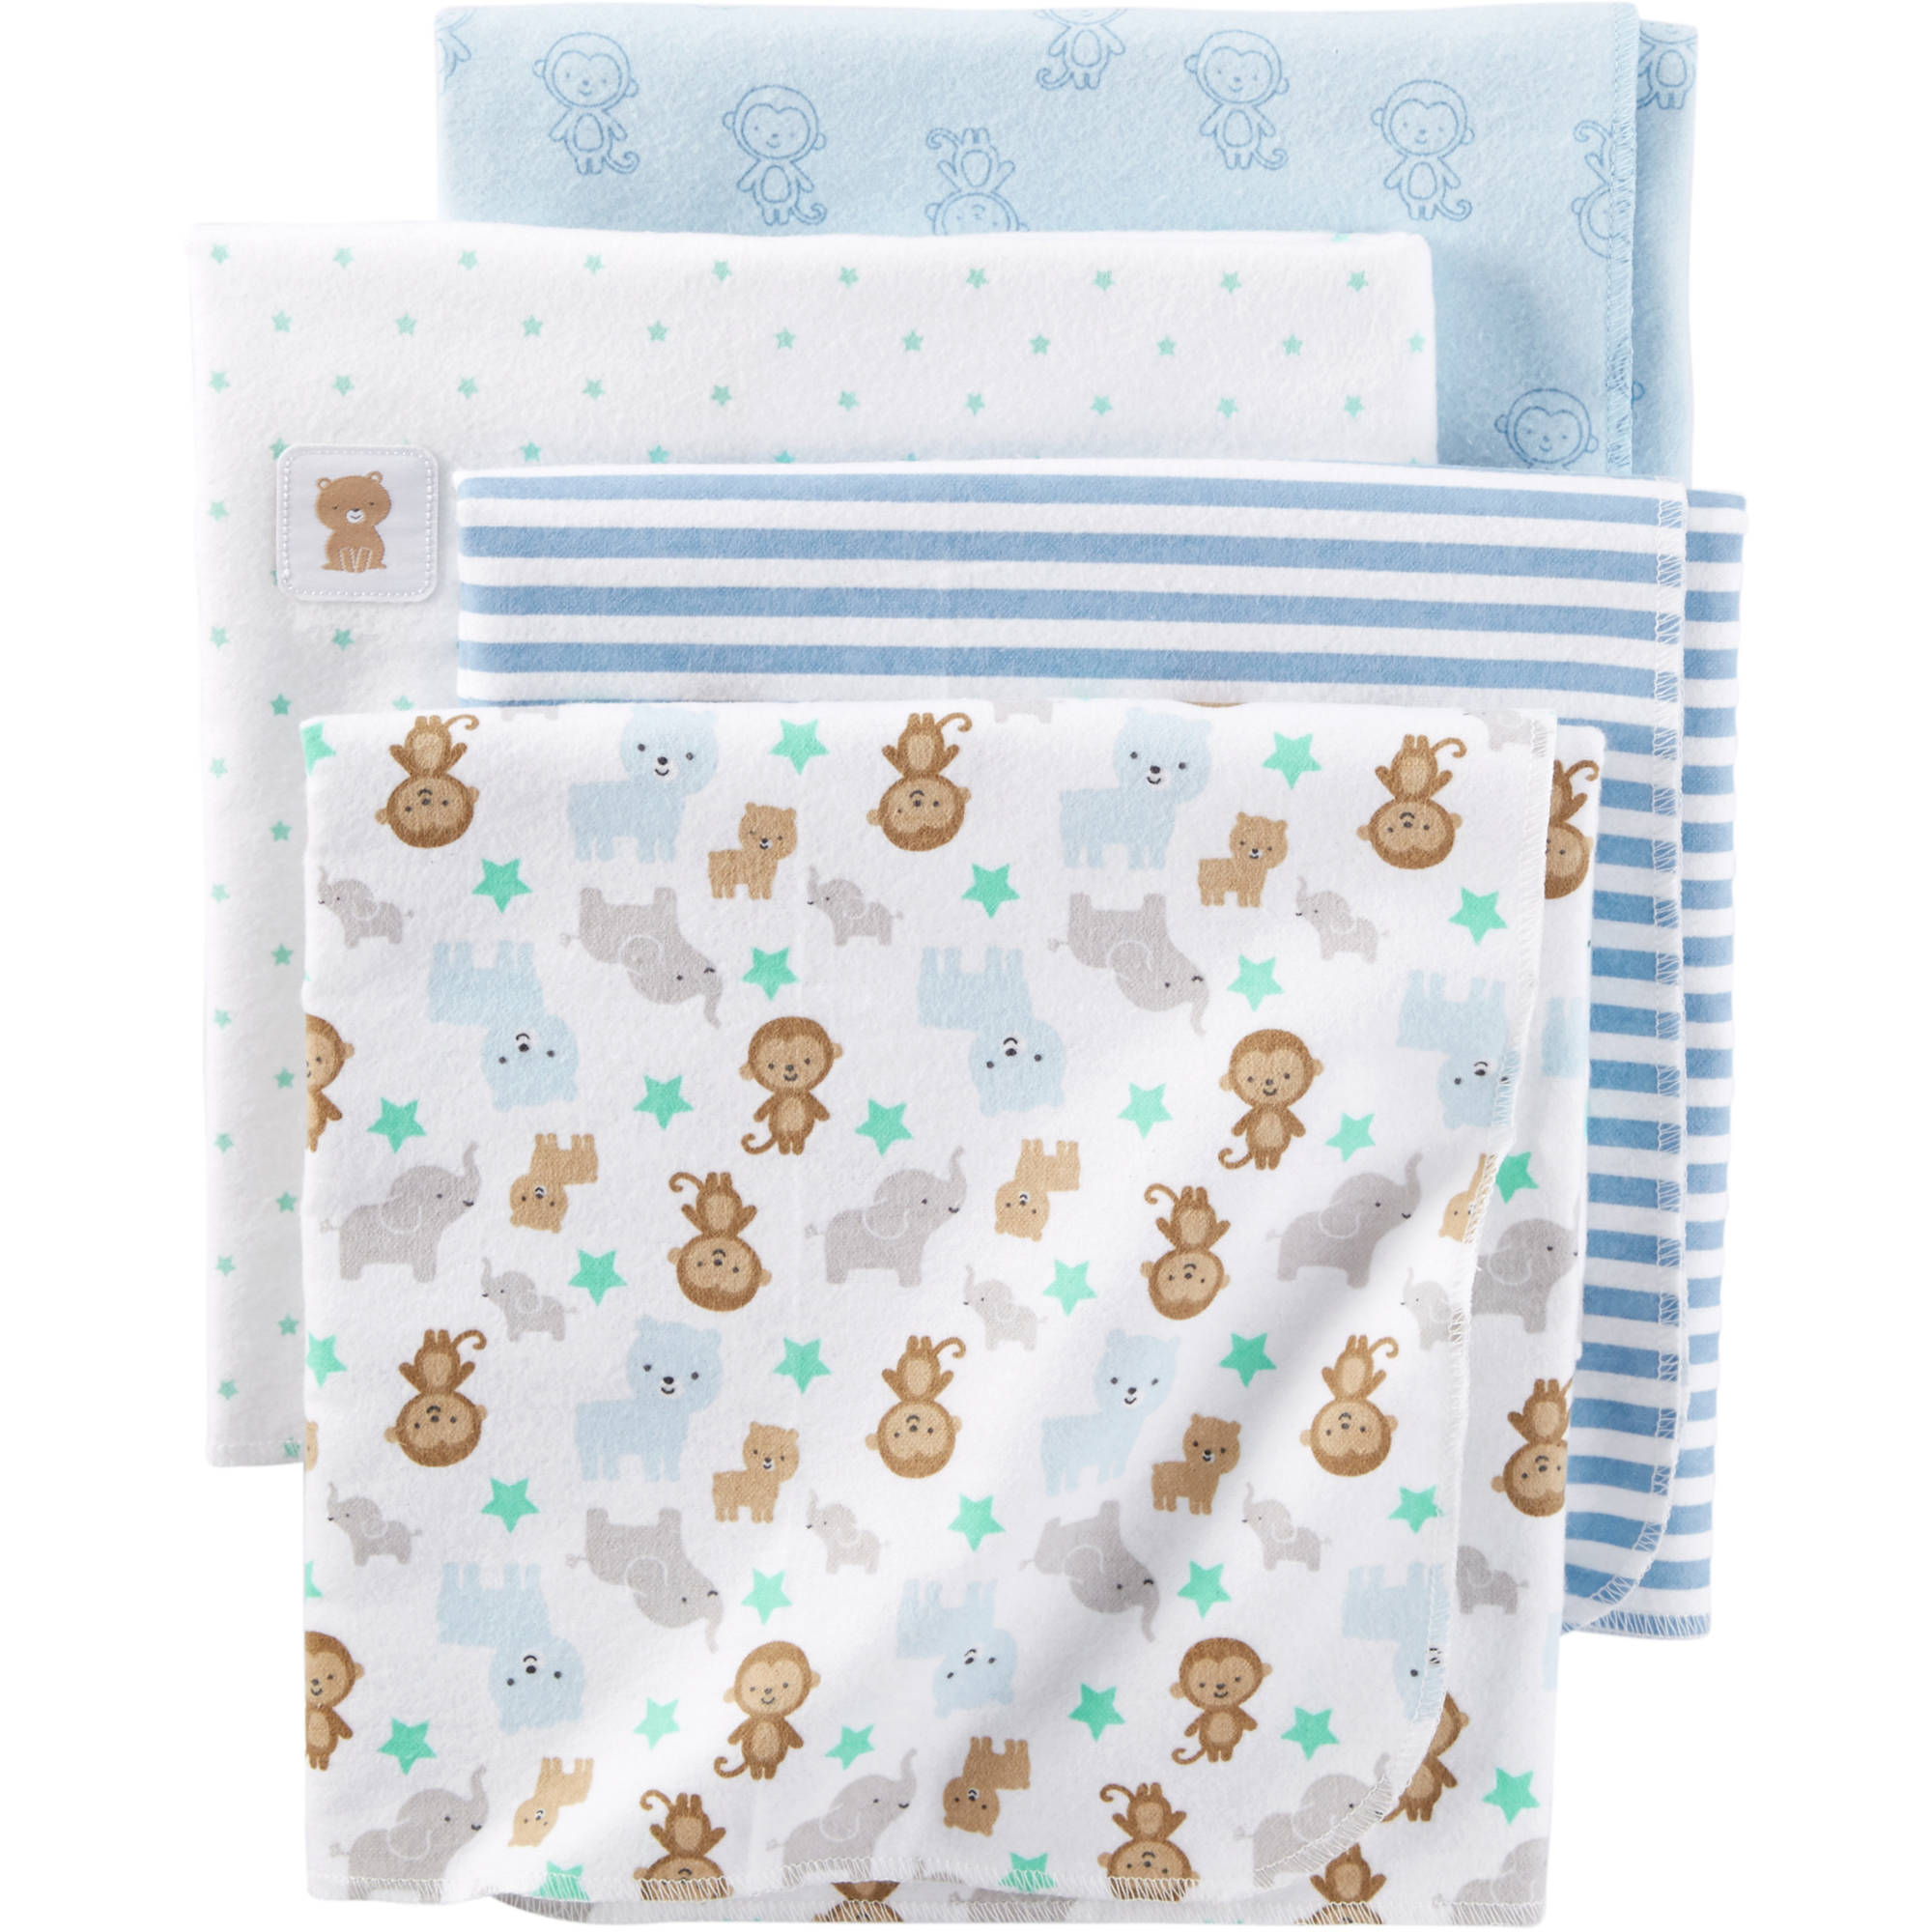 Child of Mine Newborn Baby Flannel Receiving Blanket, 4pk, Blue